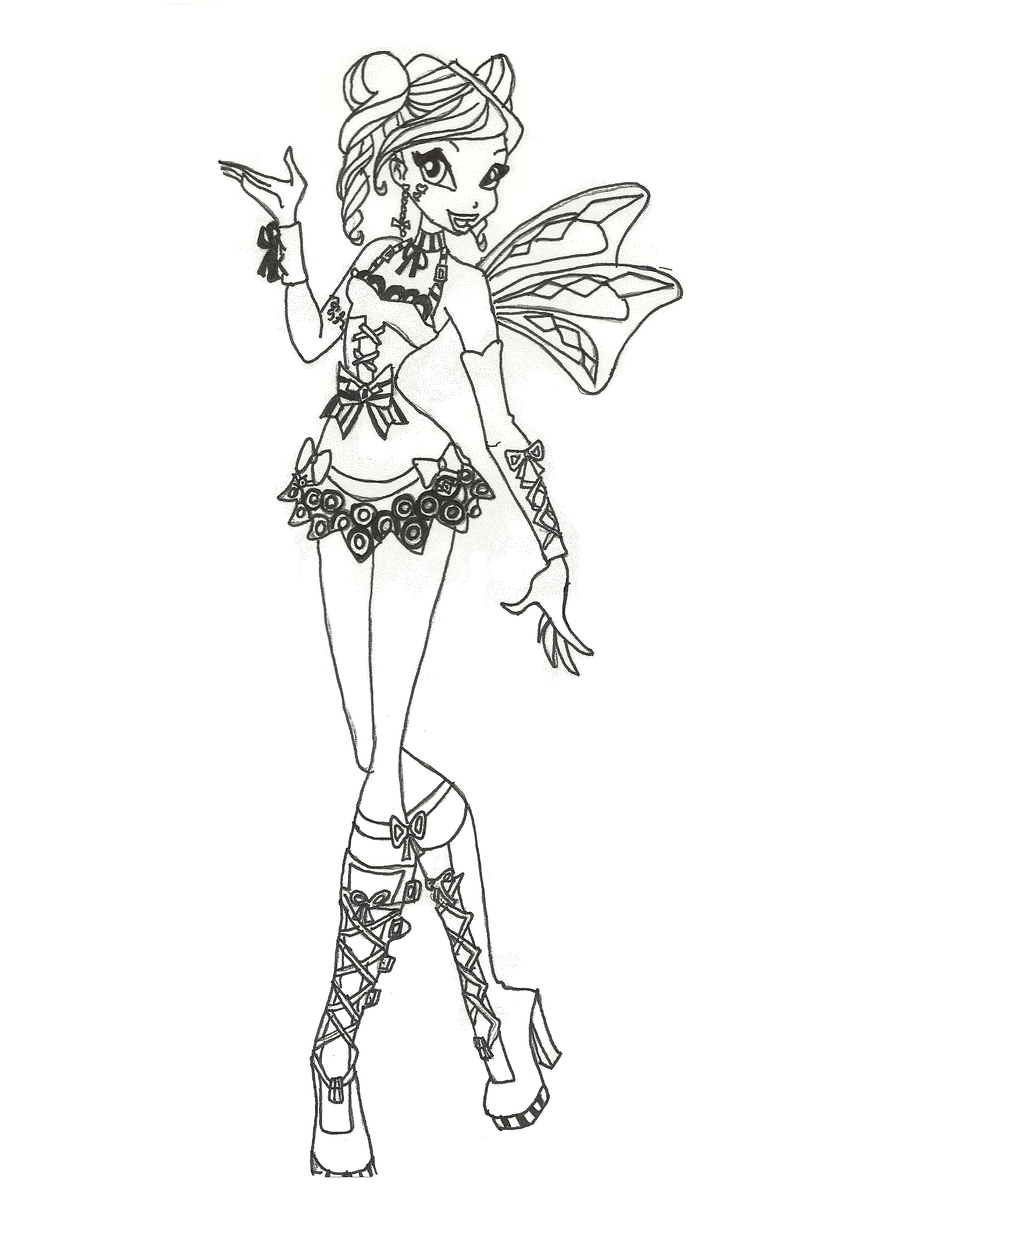 Coloring Pages Le Bloom : Hallowinx bloom coloring page by timefairy on deviantart